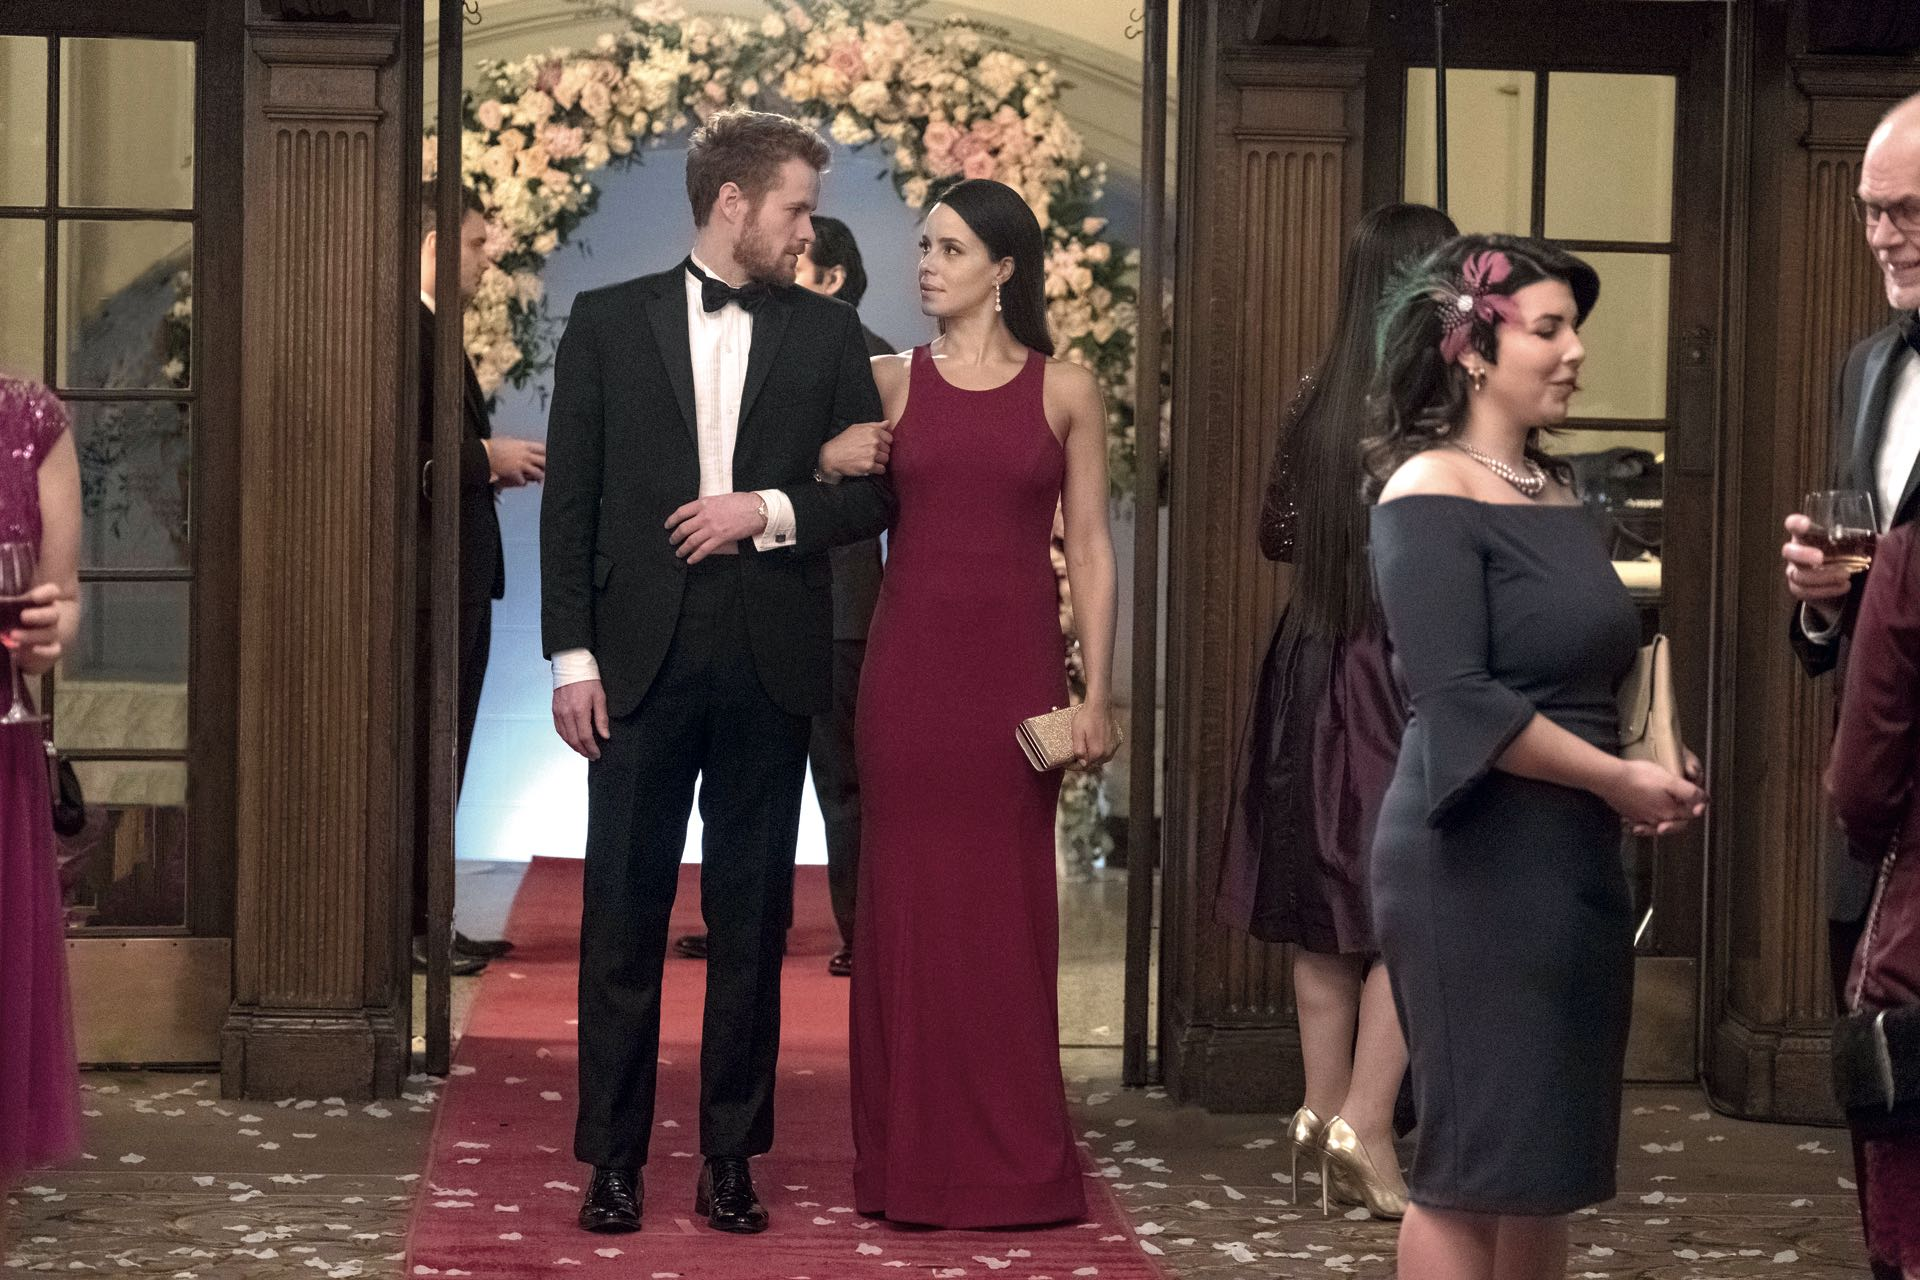 #PARA TI - MEGHAN Y HARRY 1 - News - GENTILEZA LIFETIME - 20180504